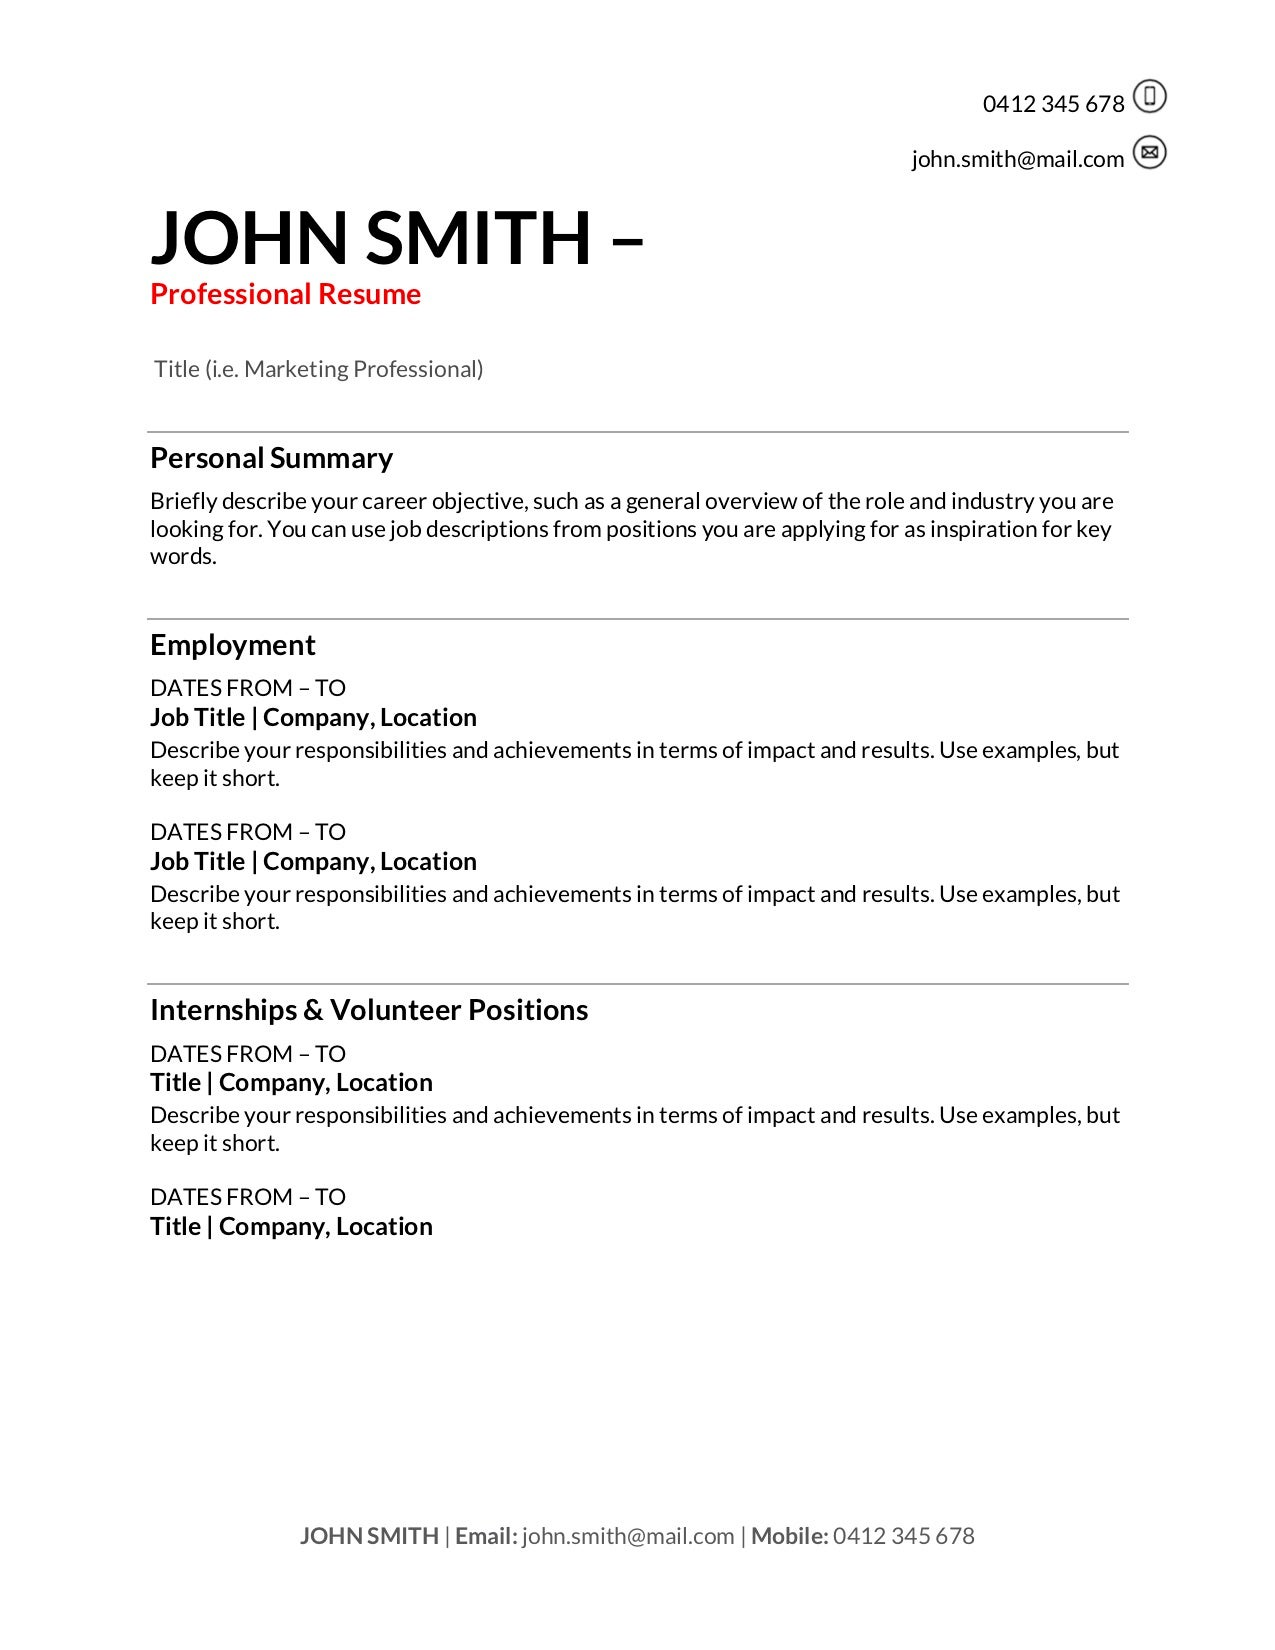 free resume templates to write in training au for one term job clear google drive putting Resume Resume For One Long Term Job